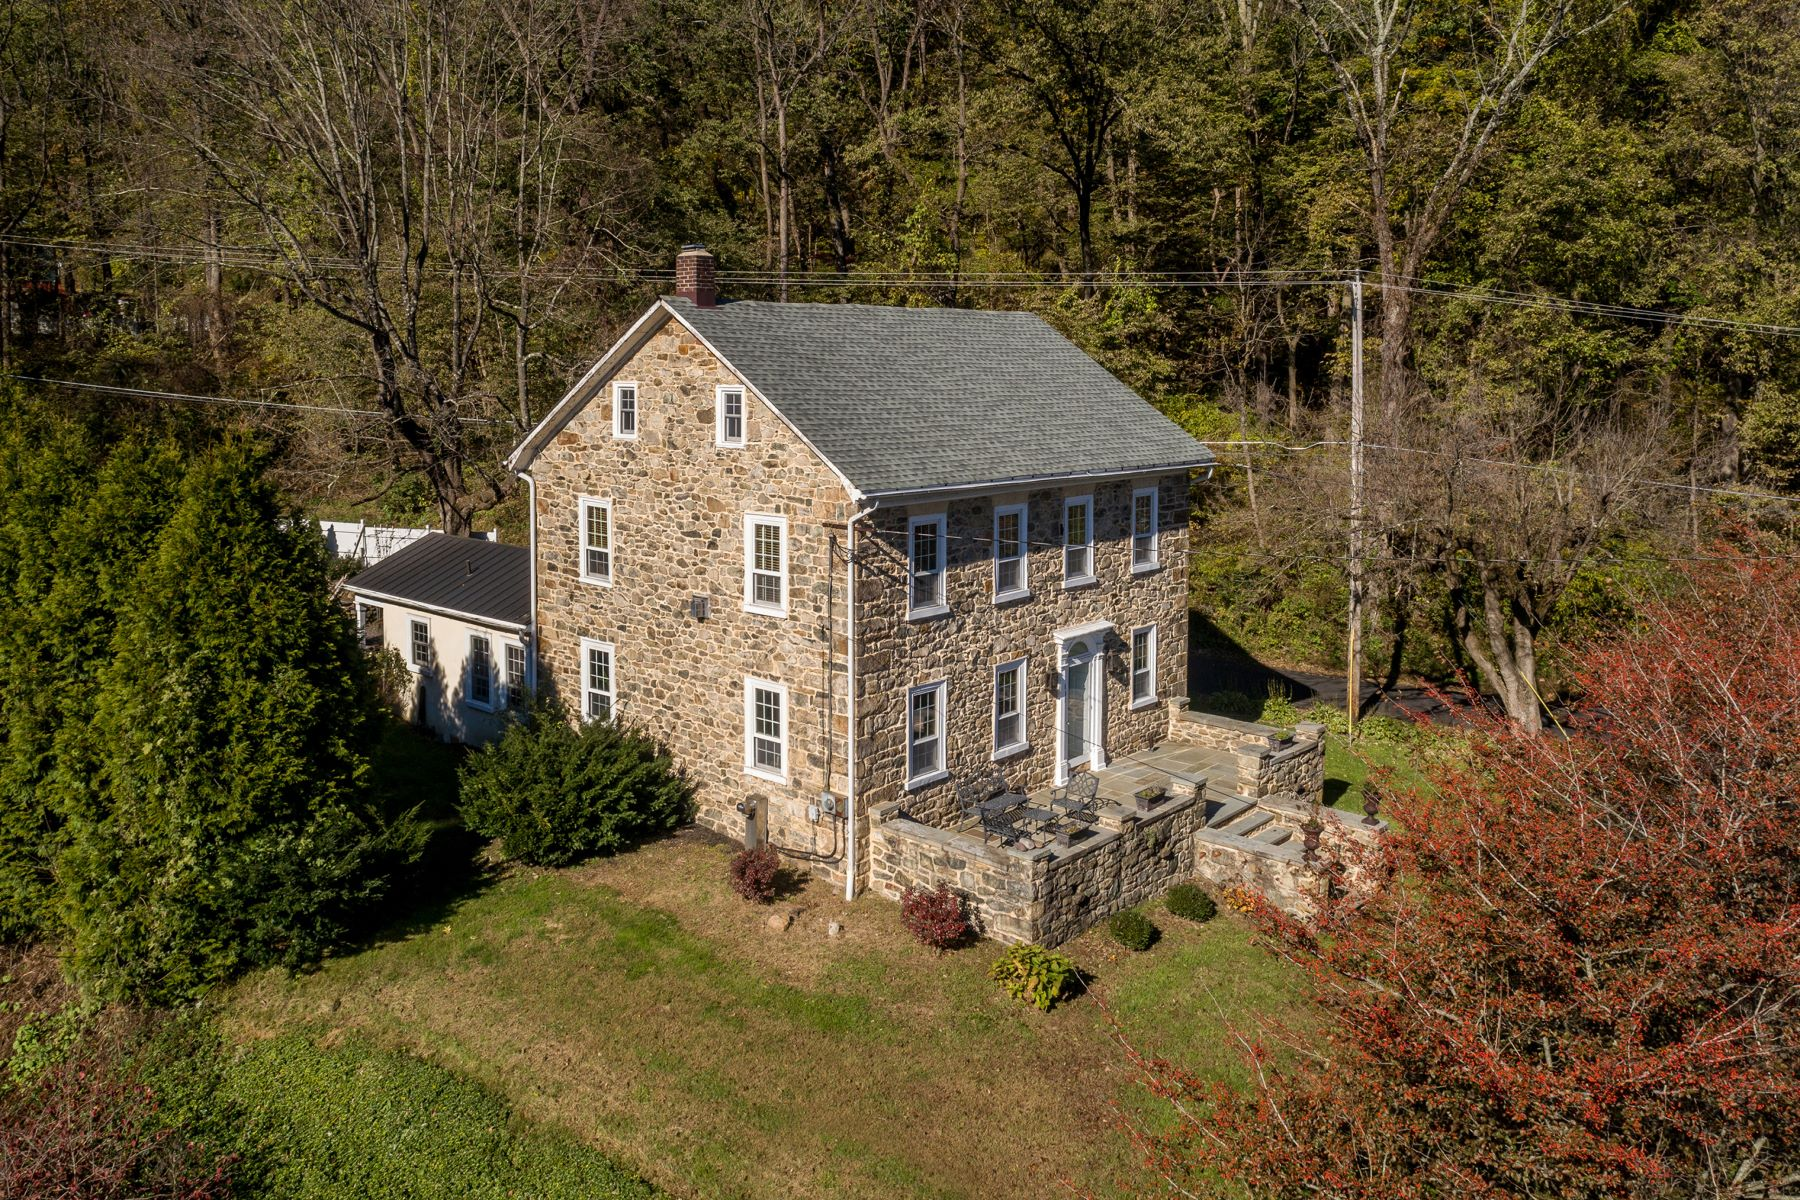 Single Family Homes for Sale at 107 EASTON RD Riegelsville, Pennsylvania 18077 United States